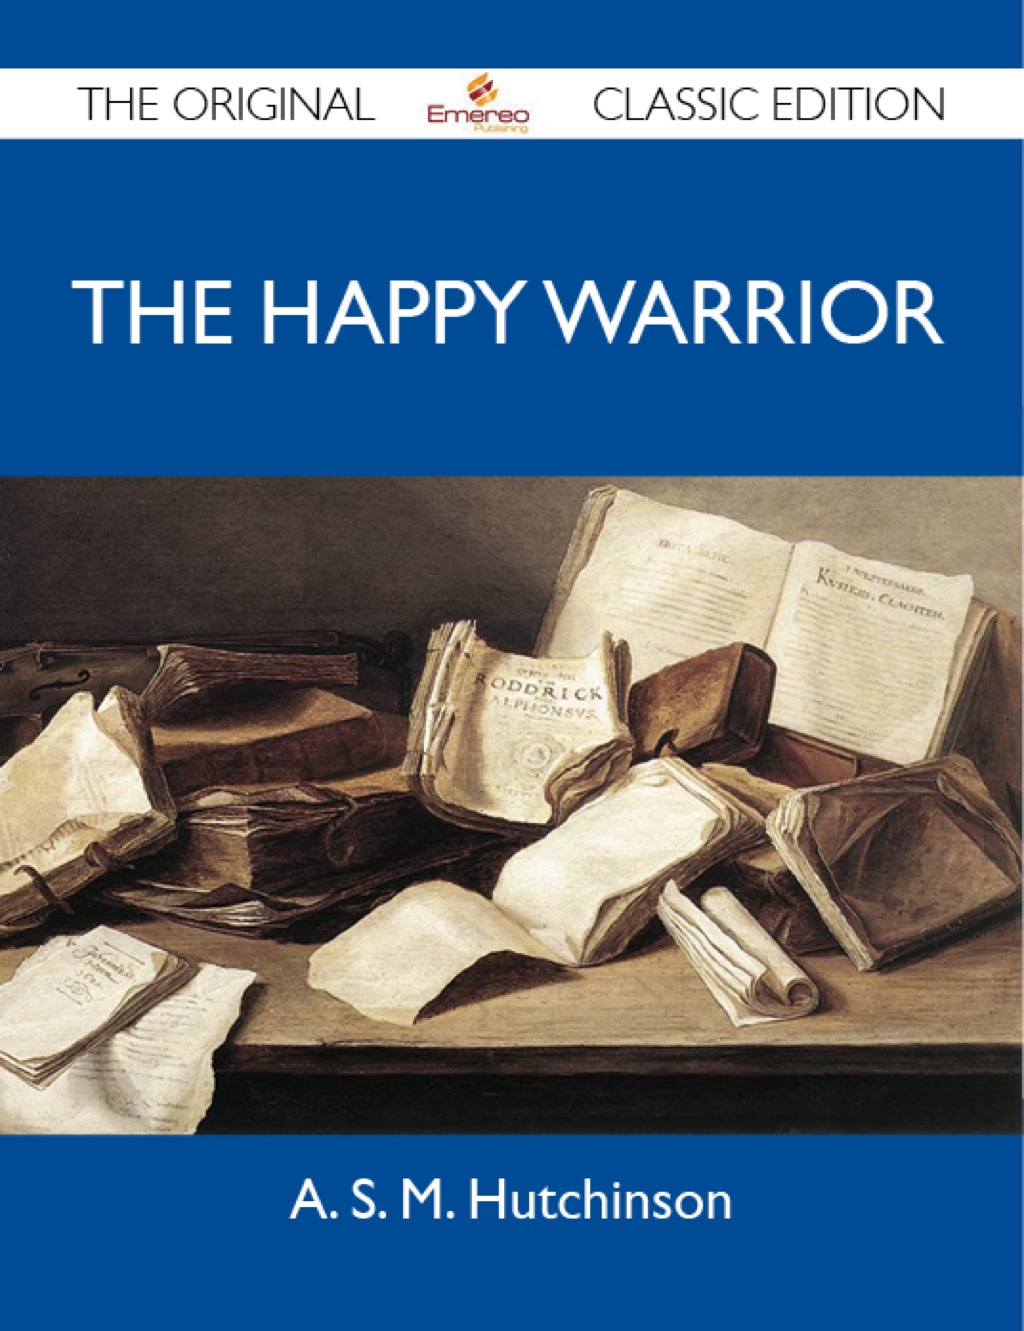 The Happy Warrior - The Original Classic Edition (ebook) eBooks